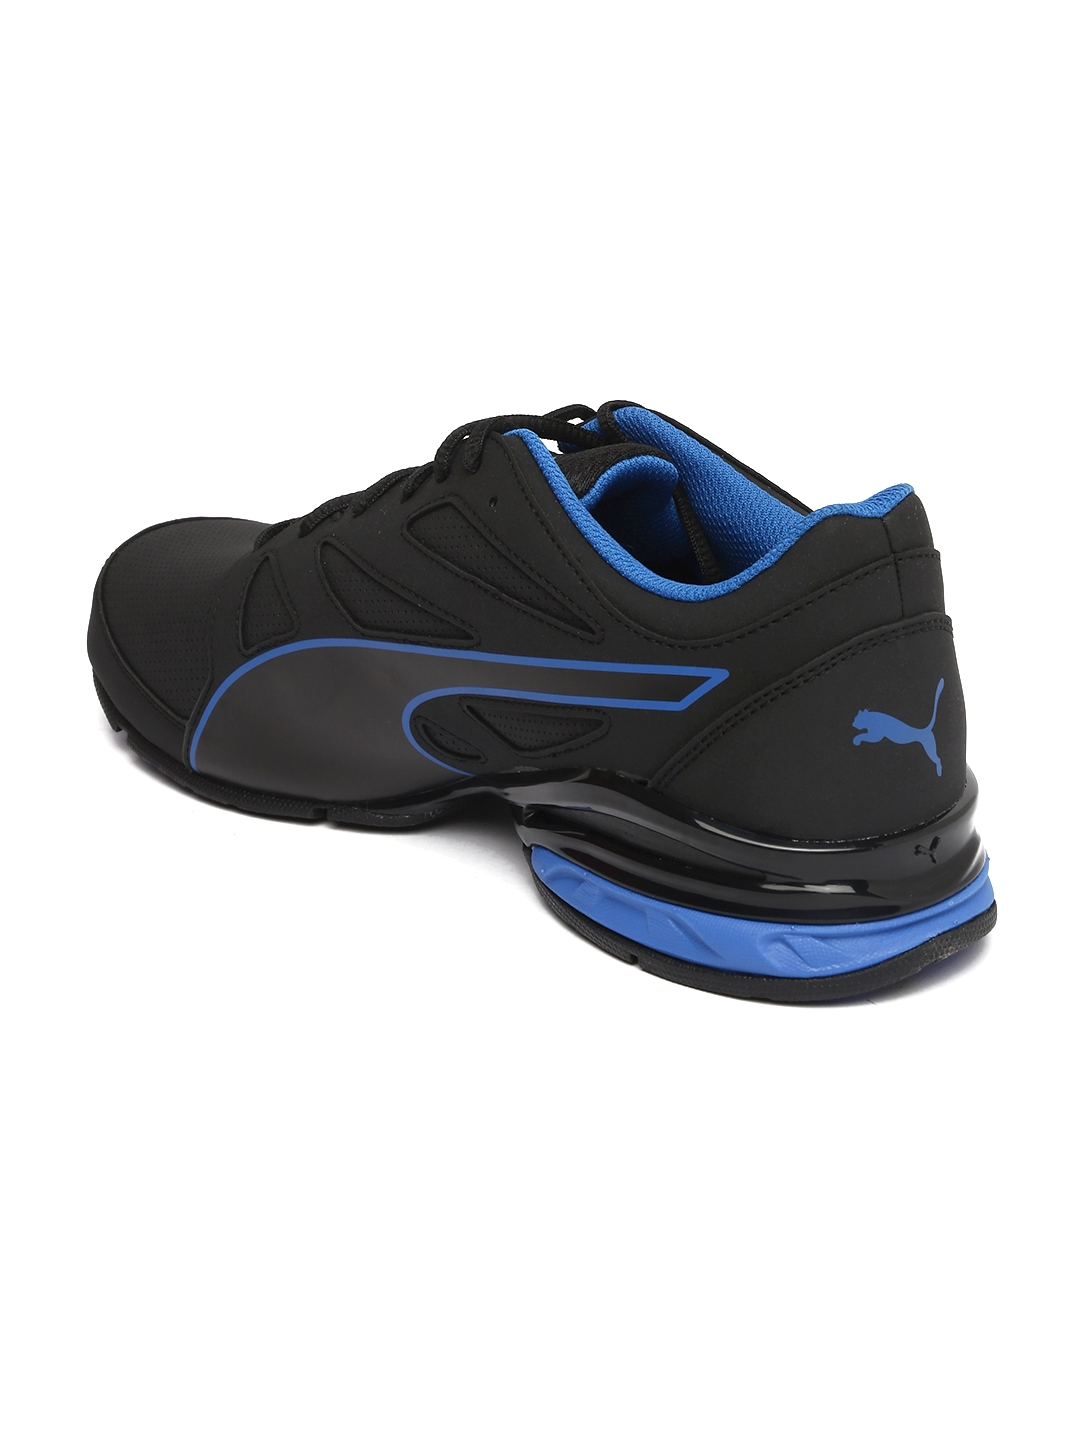 Buy Puma Men Black Tazon Modern SL FM Running Shoes - Sports Shoes ... e911a34ed